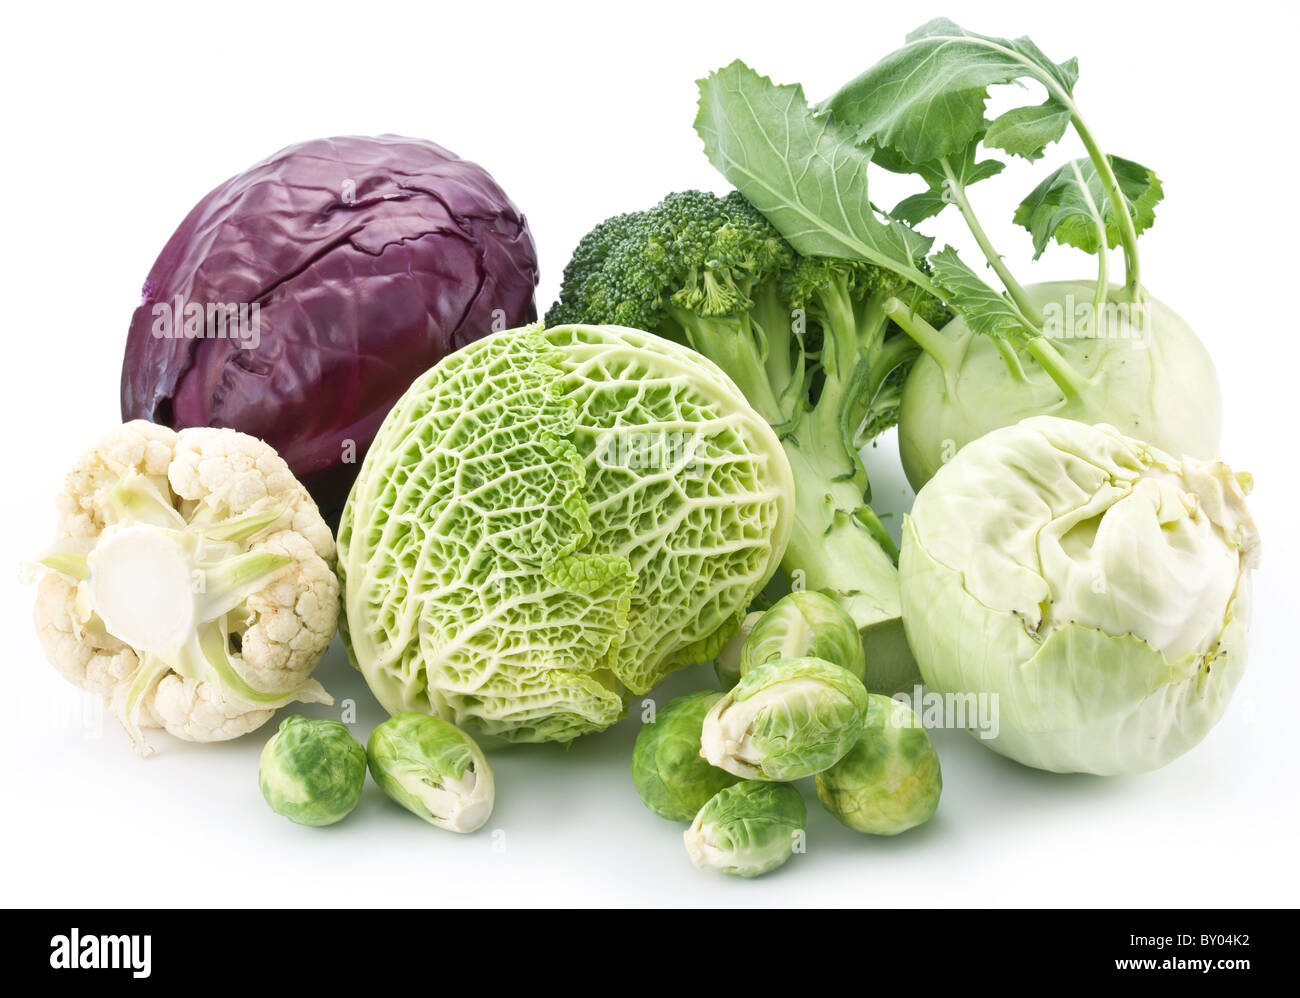 Collection of different varieties of cabbage on a white background. - Stock Image